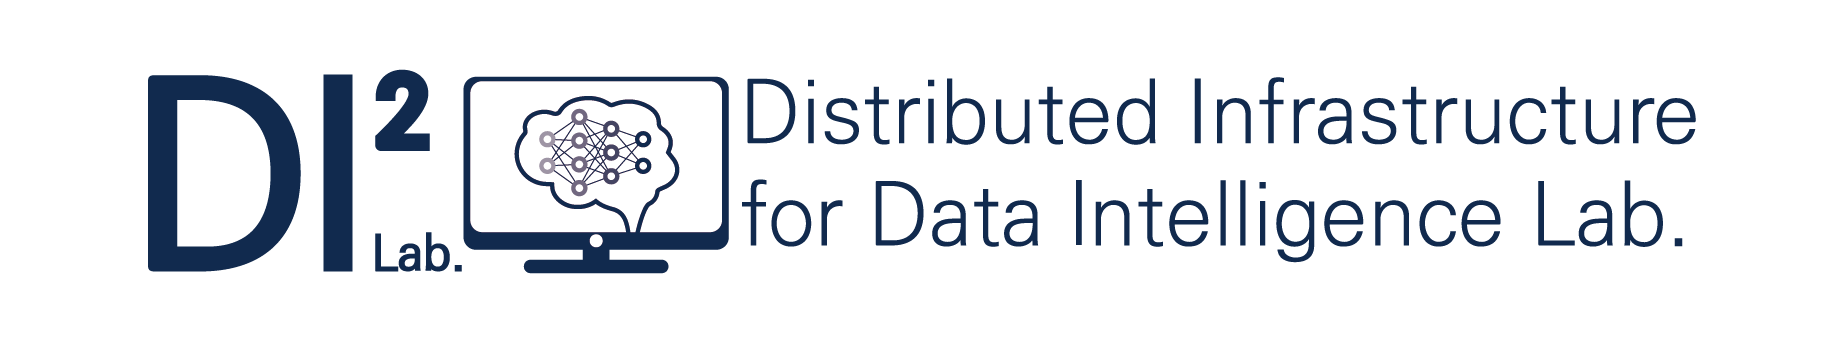 Distributed Infrastructure for Data Intelligence Lab.